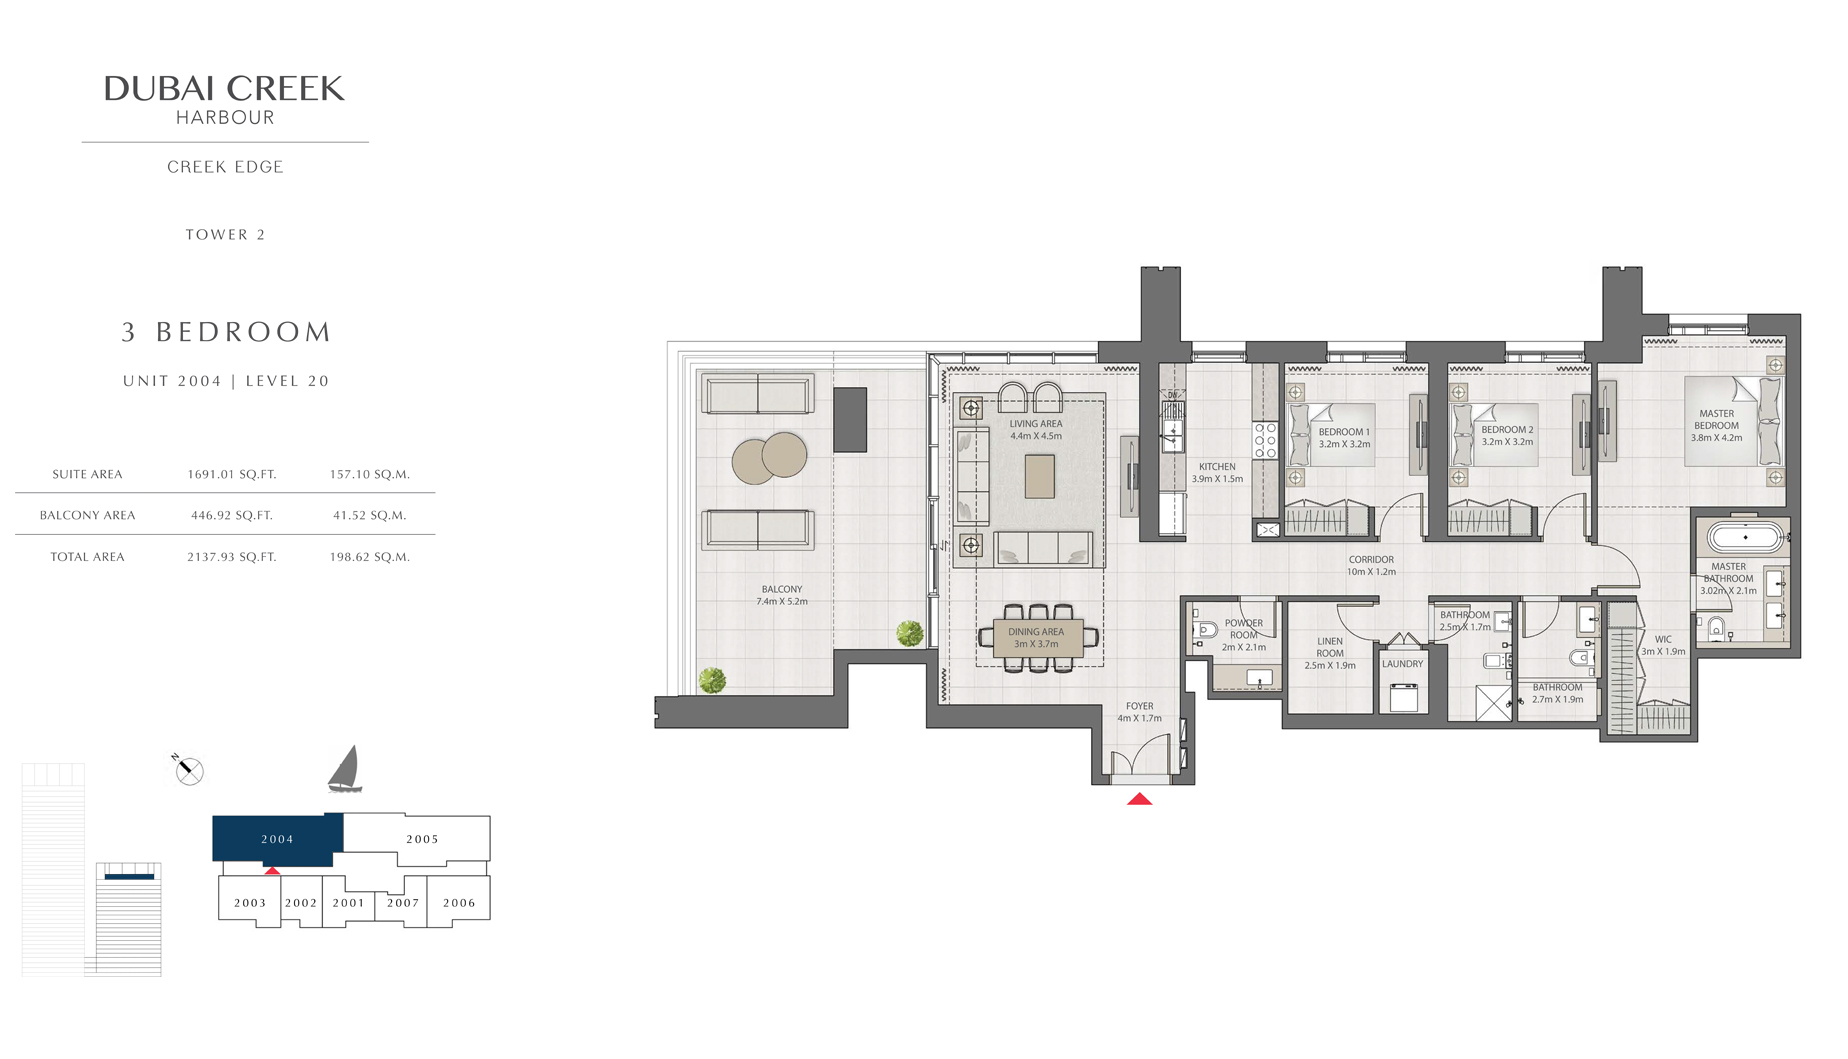 3 Bedroom Tower 2 Unit 2004 Level 20 Size 2137 sq.ft